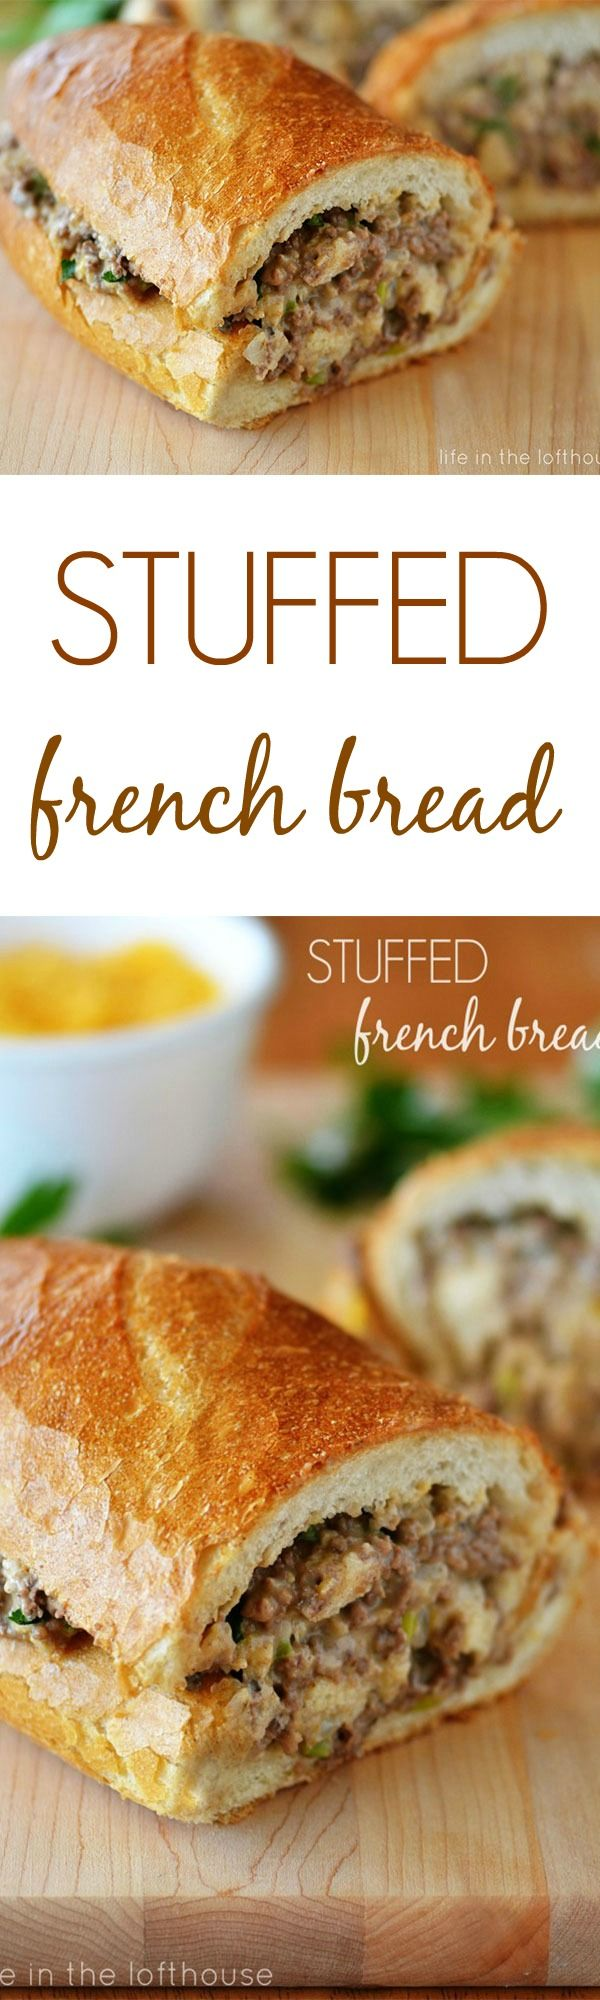 It was a little difficult to take a good picture of this Stuffed French Bread, but I HAD to share the recipe. It was so delicious! A cheesy and flavorful ground beef mixture stuffed inside French Bread. Holy moly, so good! It's even better if you use homemade French bread.    Another... Read More »